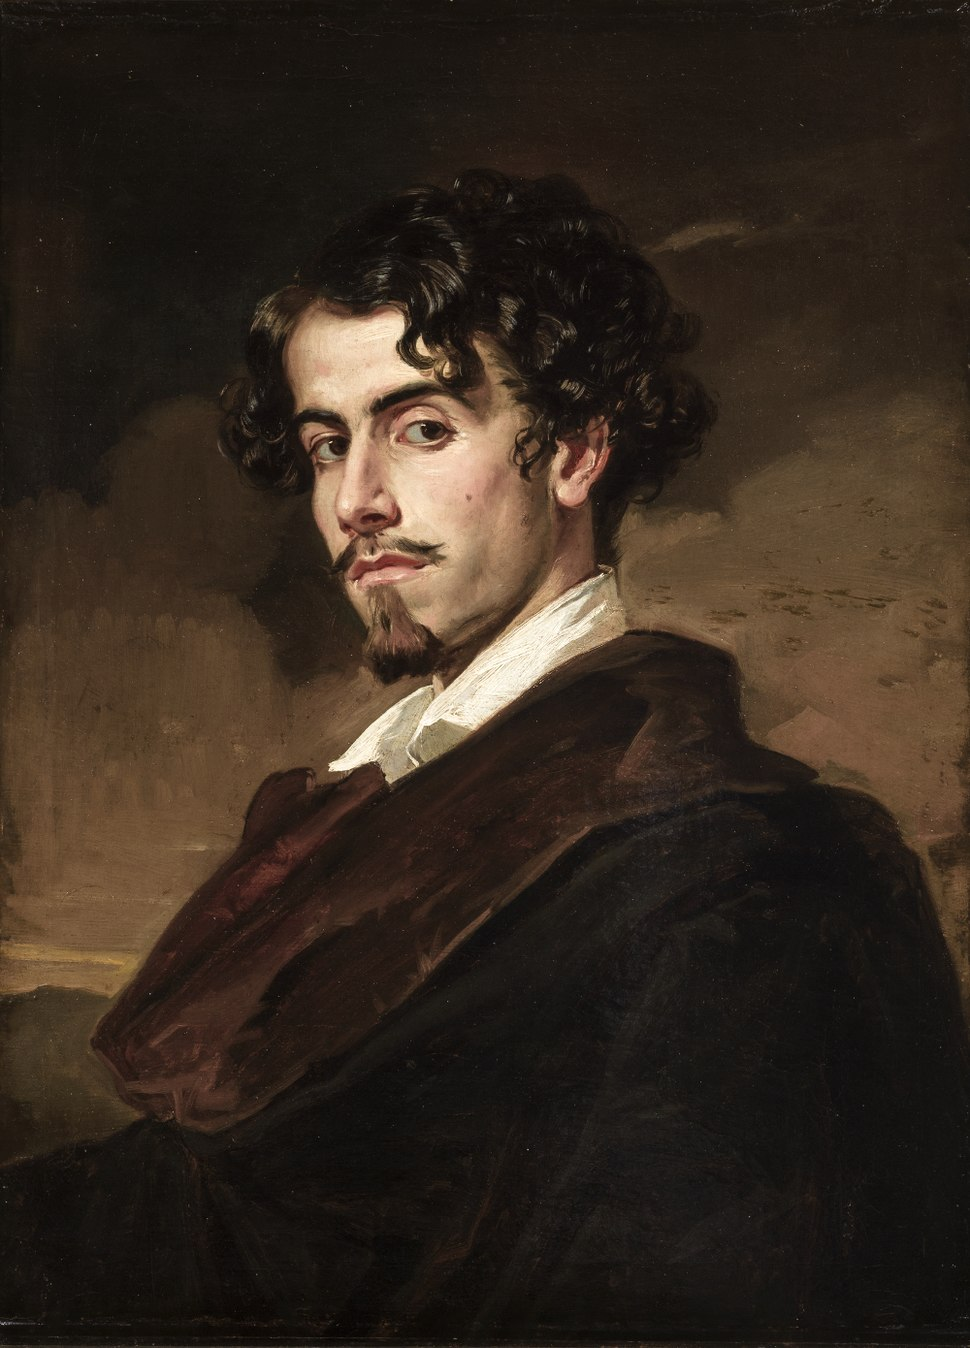 Portrait of Gustavo Adolfo Bécquer, by his brother Valeriano (1862)